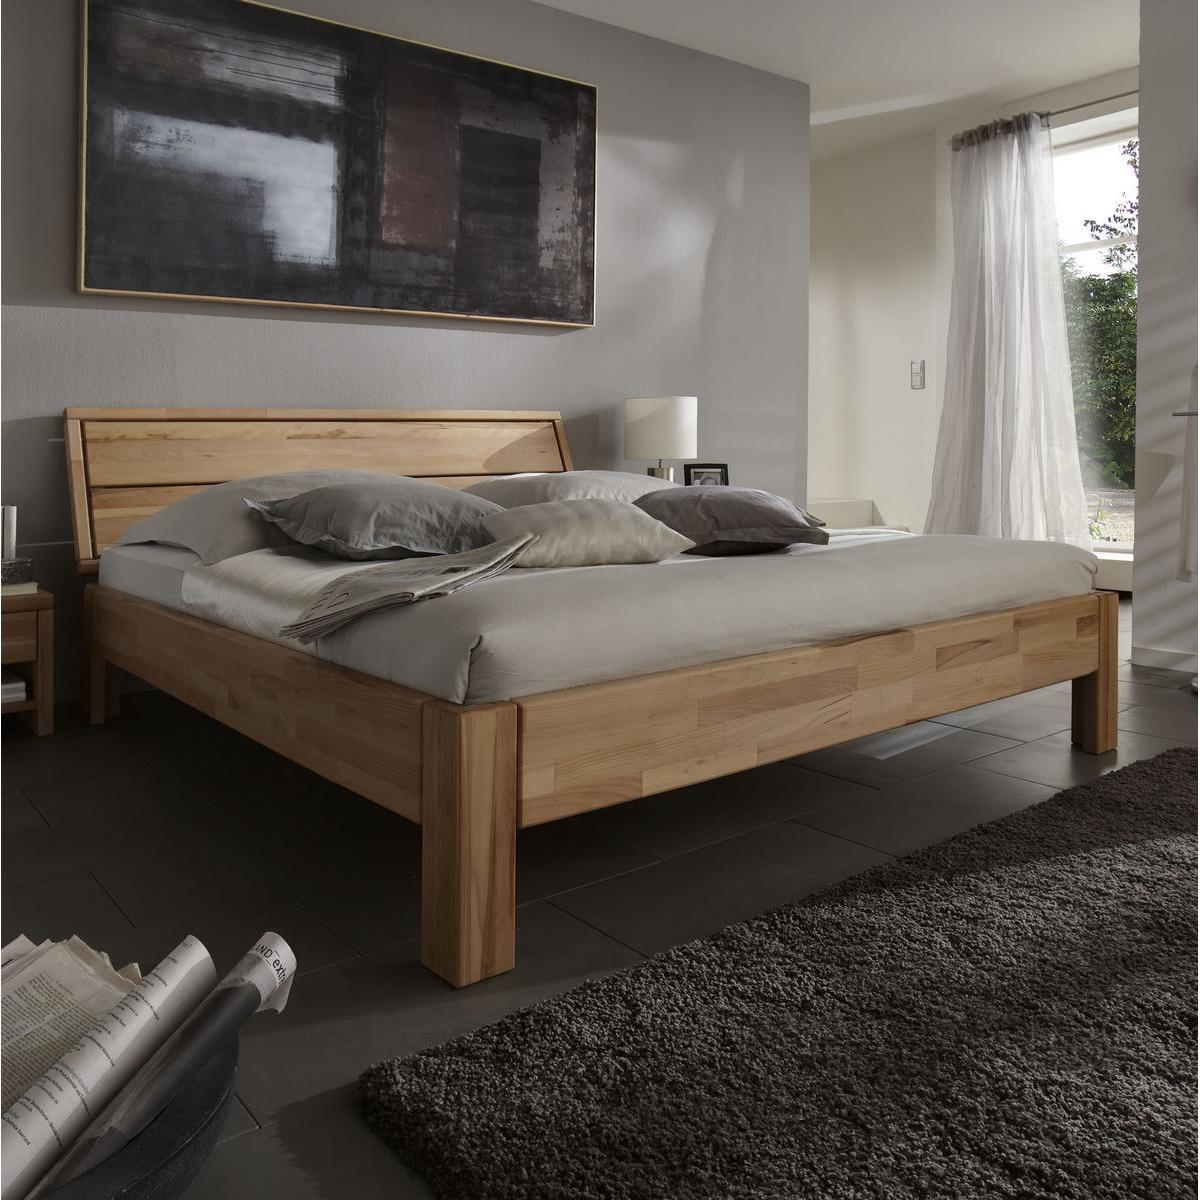 massivholz bett 120x200 easy sleep kernbuche massiv ge lt 9412 93 89. Black Bedroom Furniture Sets. Home Design Ideas